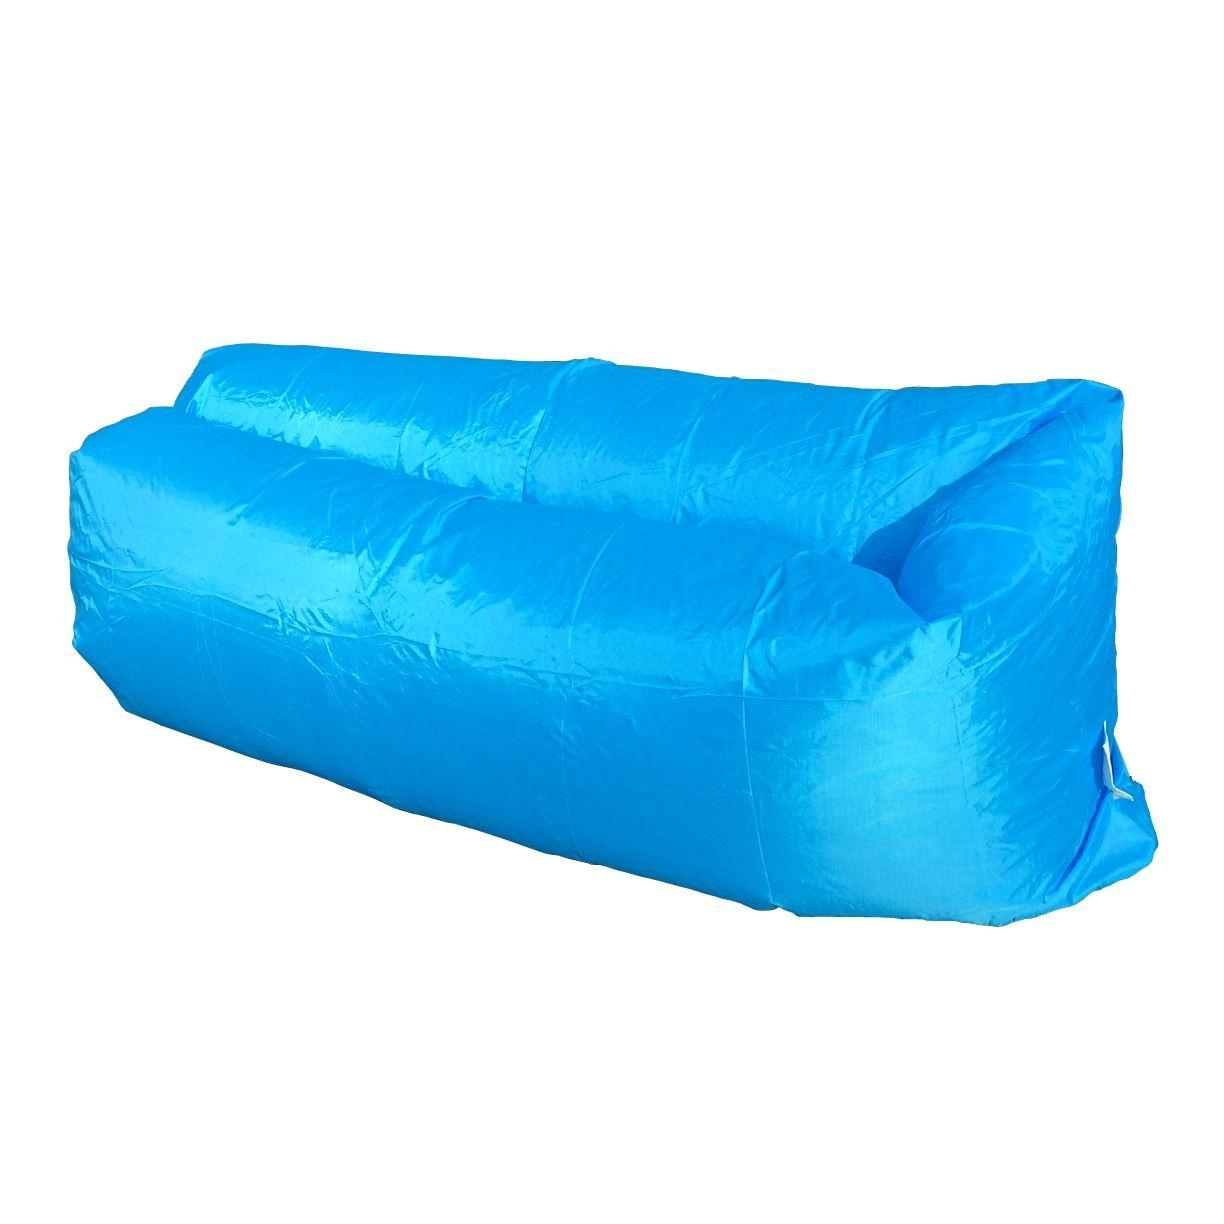 20 Best Ideas Inflatable Sofas And Chairs Sofa Ideas